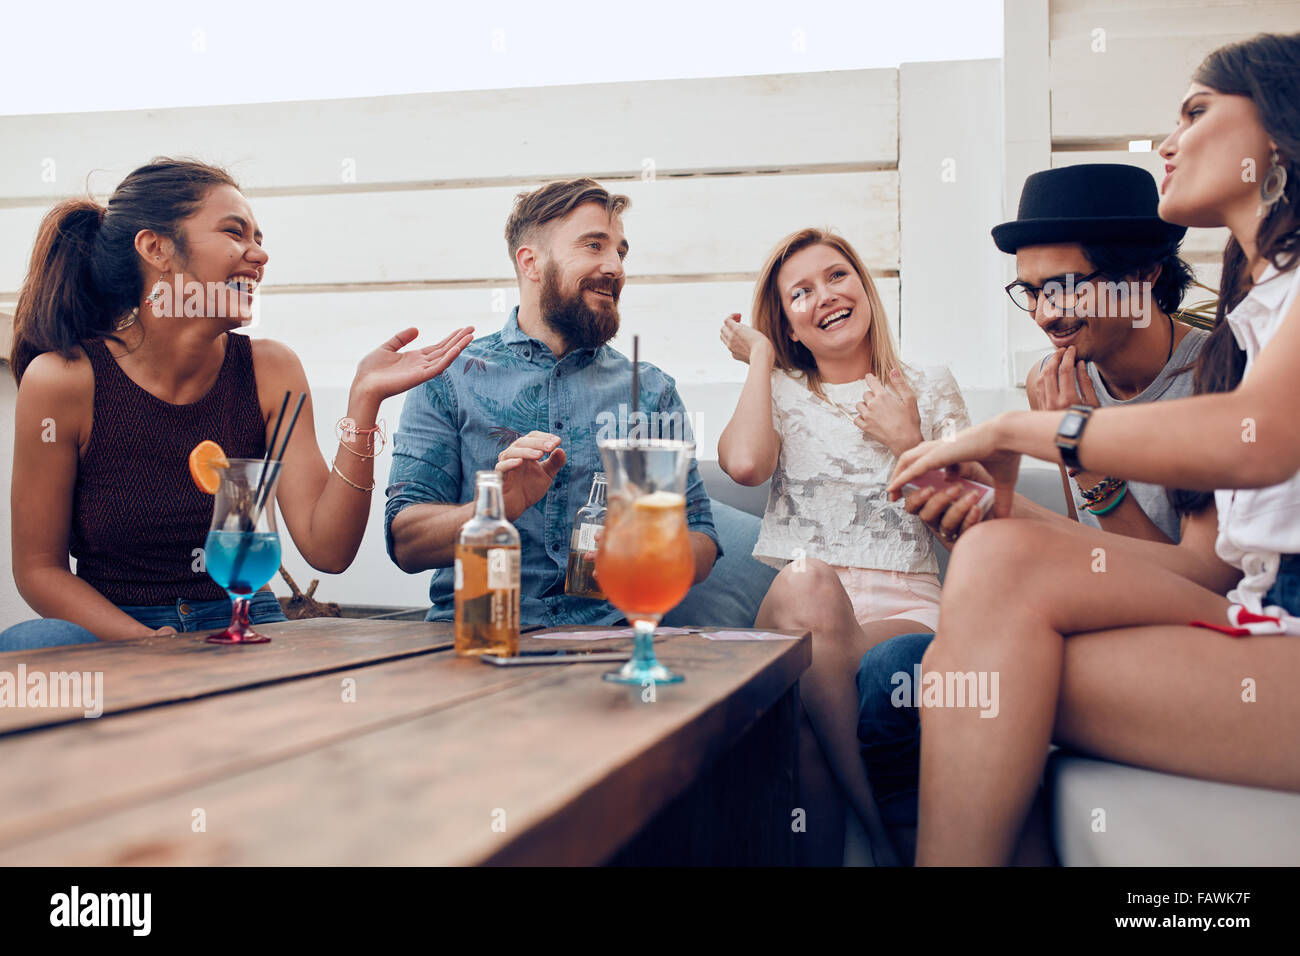 Portrait of happy young people sitting together and laughing. Multiracial friends enjoying at a party with cocktails Stock Photo